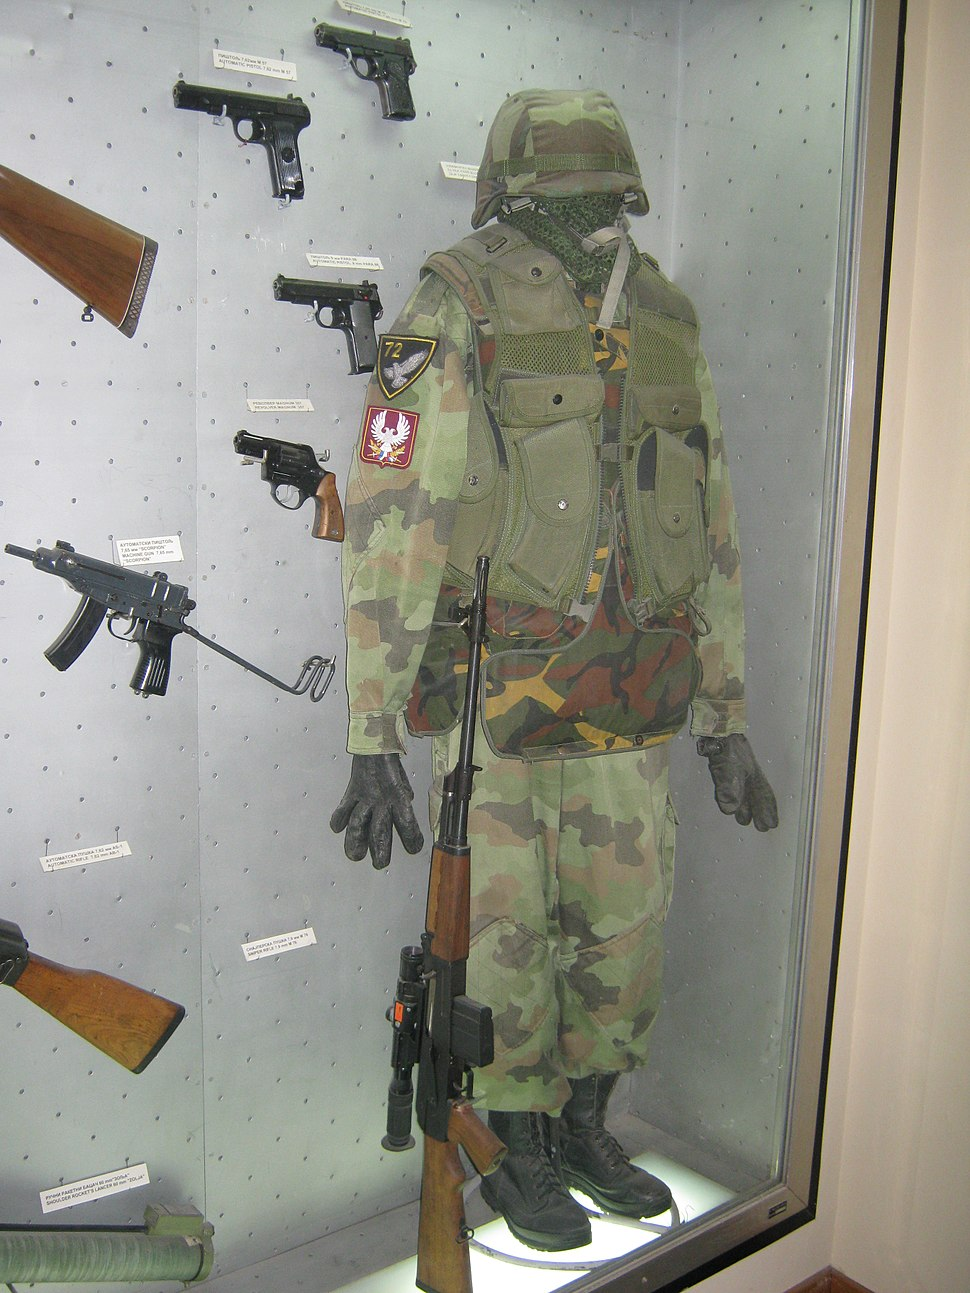 72nd Special Brigade equipment 1999, Belgrade Military Museum